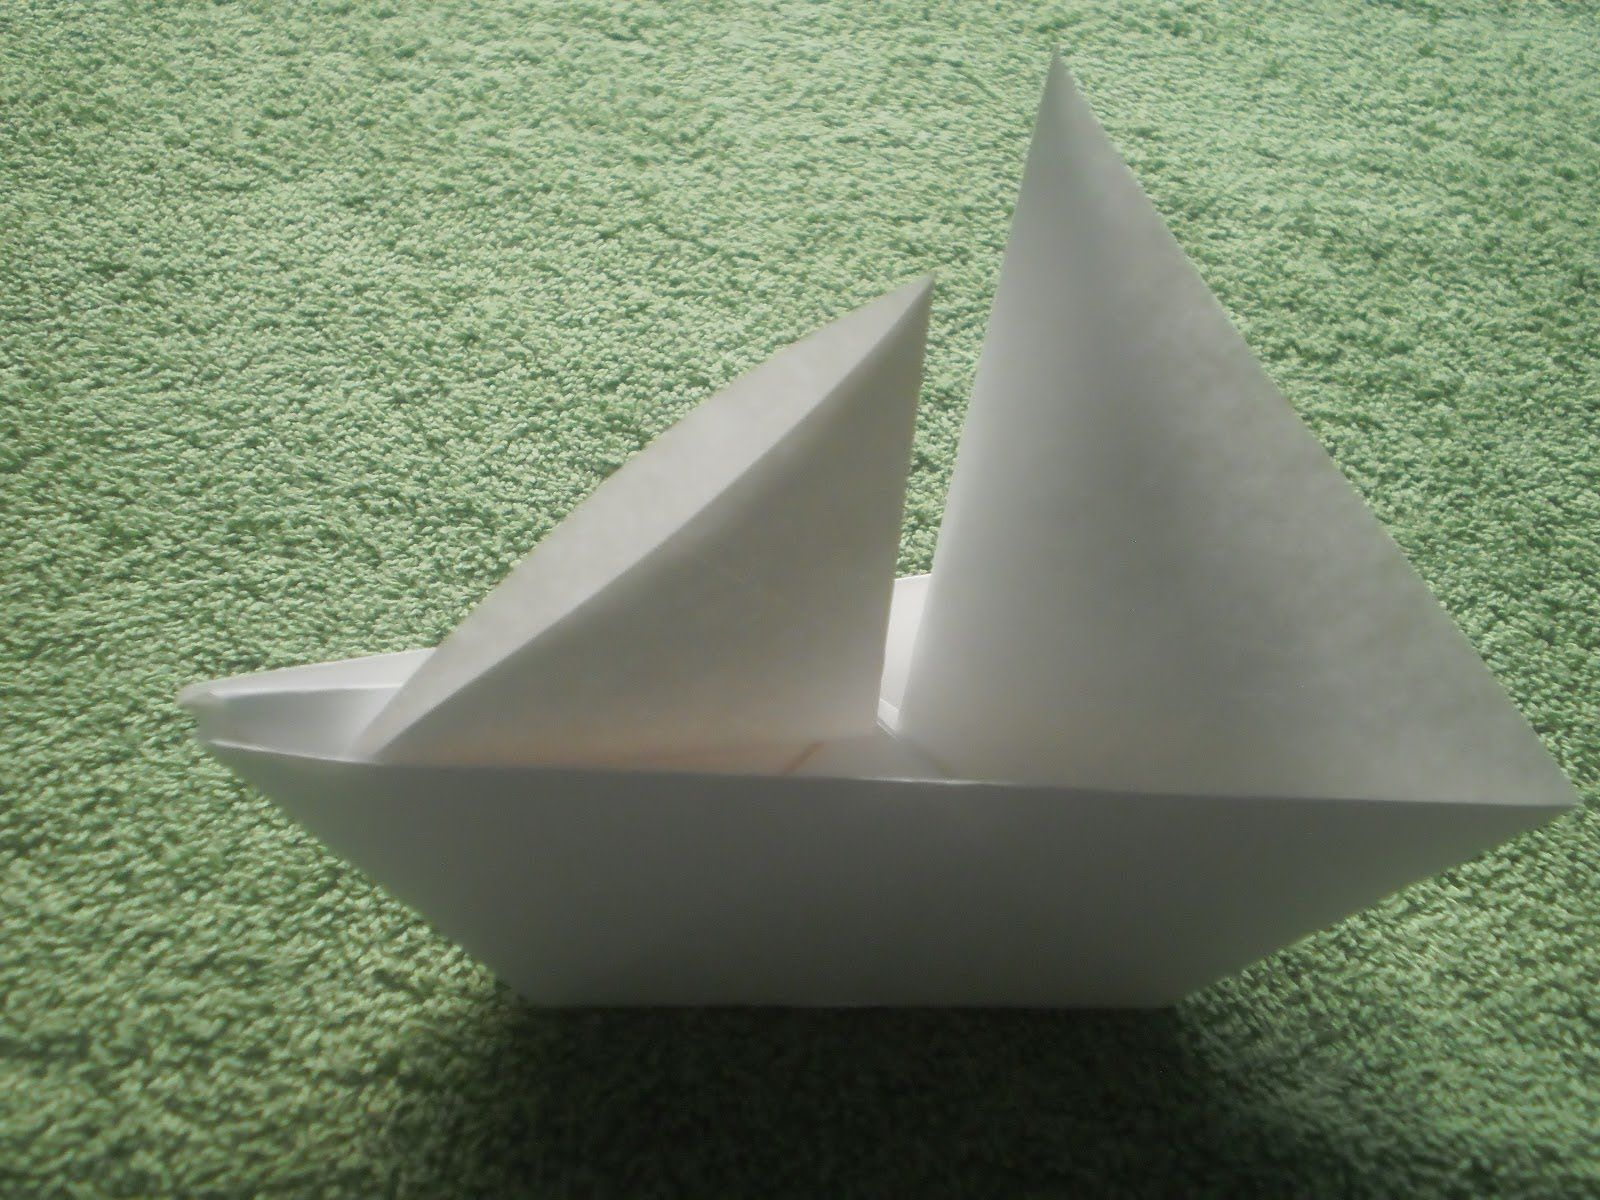 Pin By Mate G On Table Decor Origami Sailboat Origami Tutorial Origami Easy